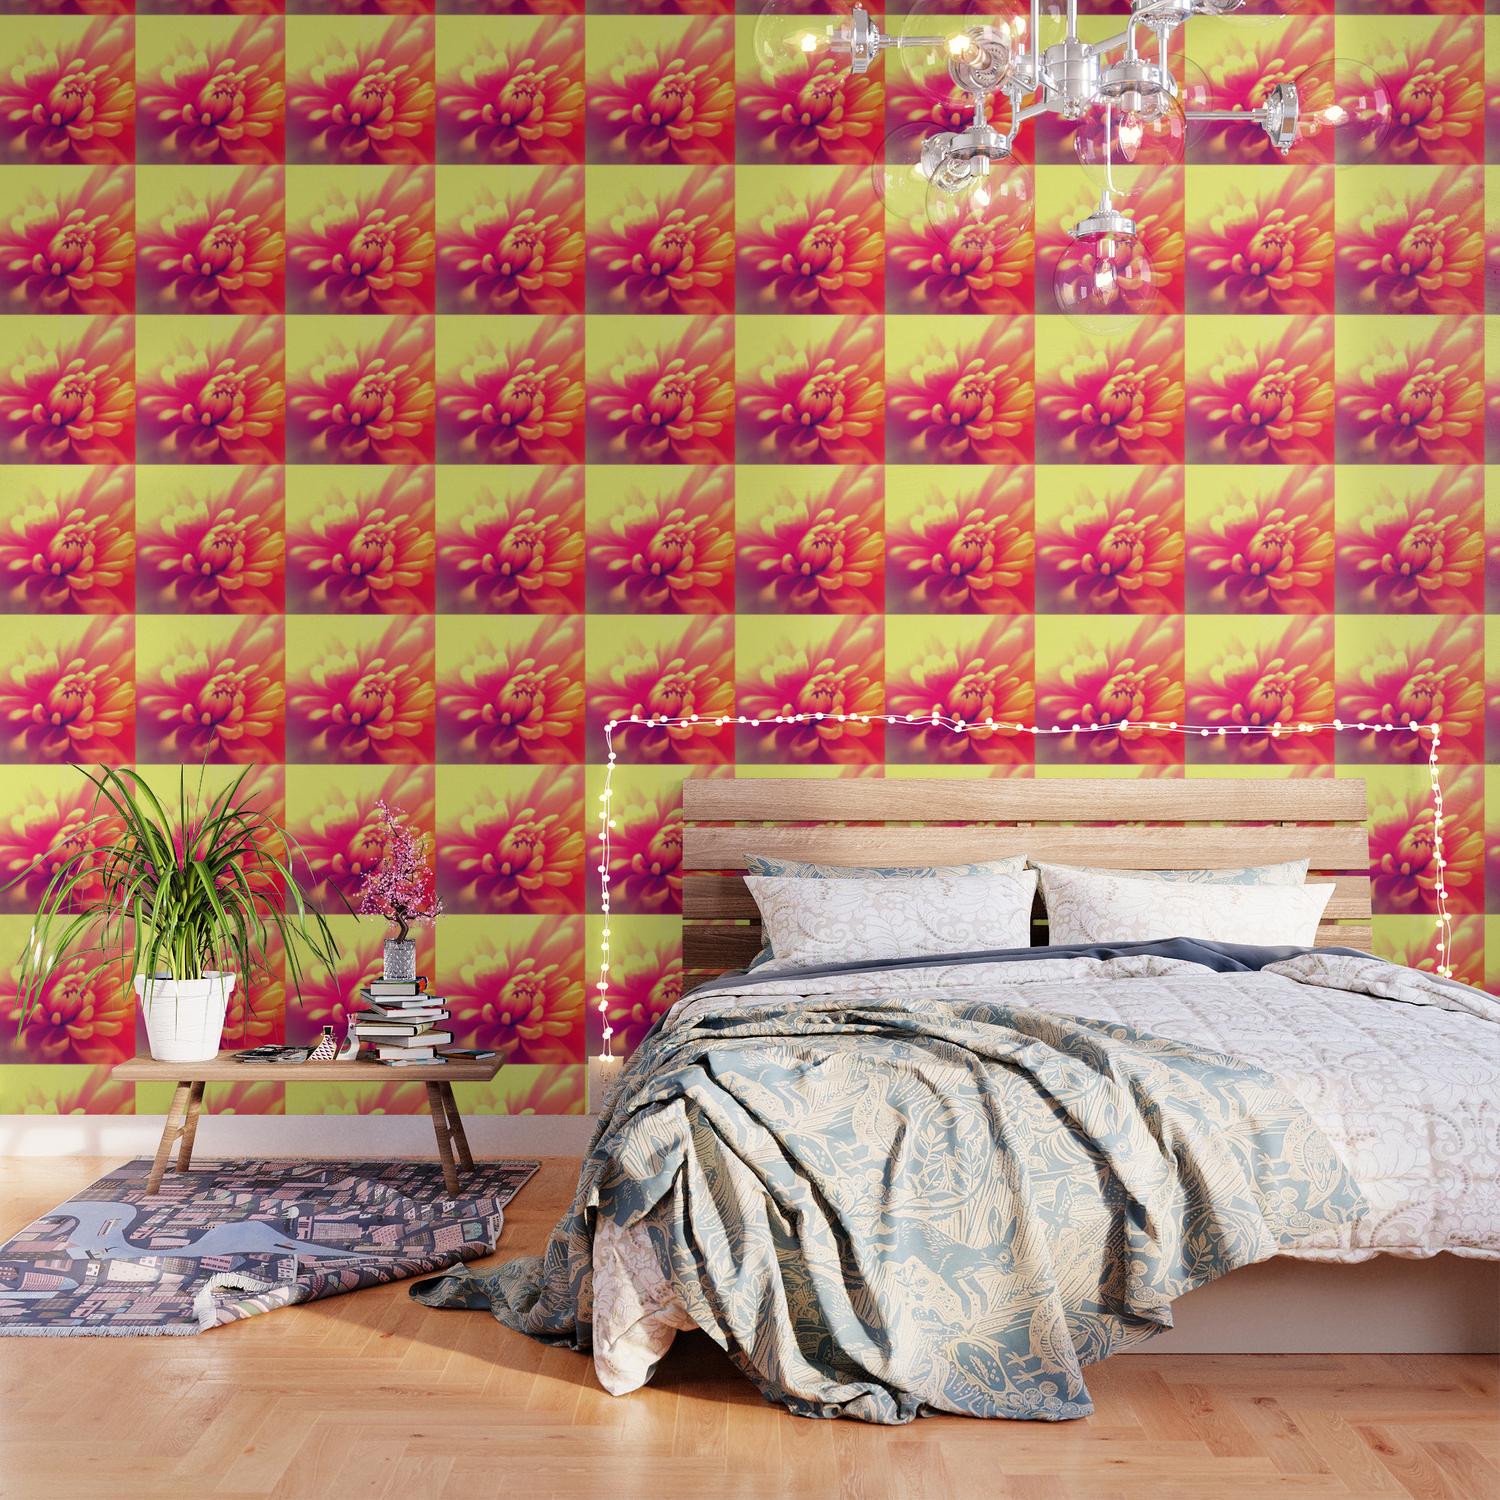 Hot Summer Floral Wallpaper By Sexyeyes69 Society6